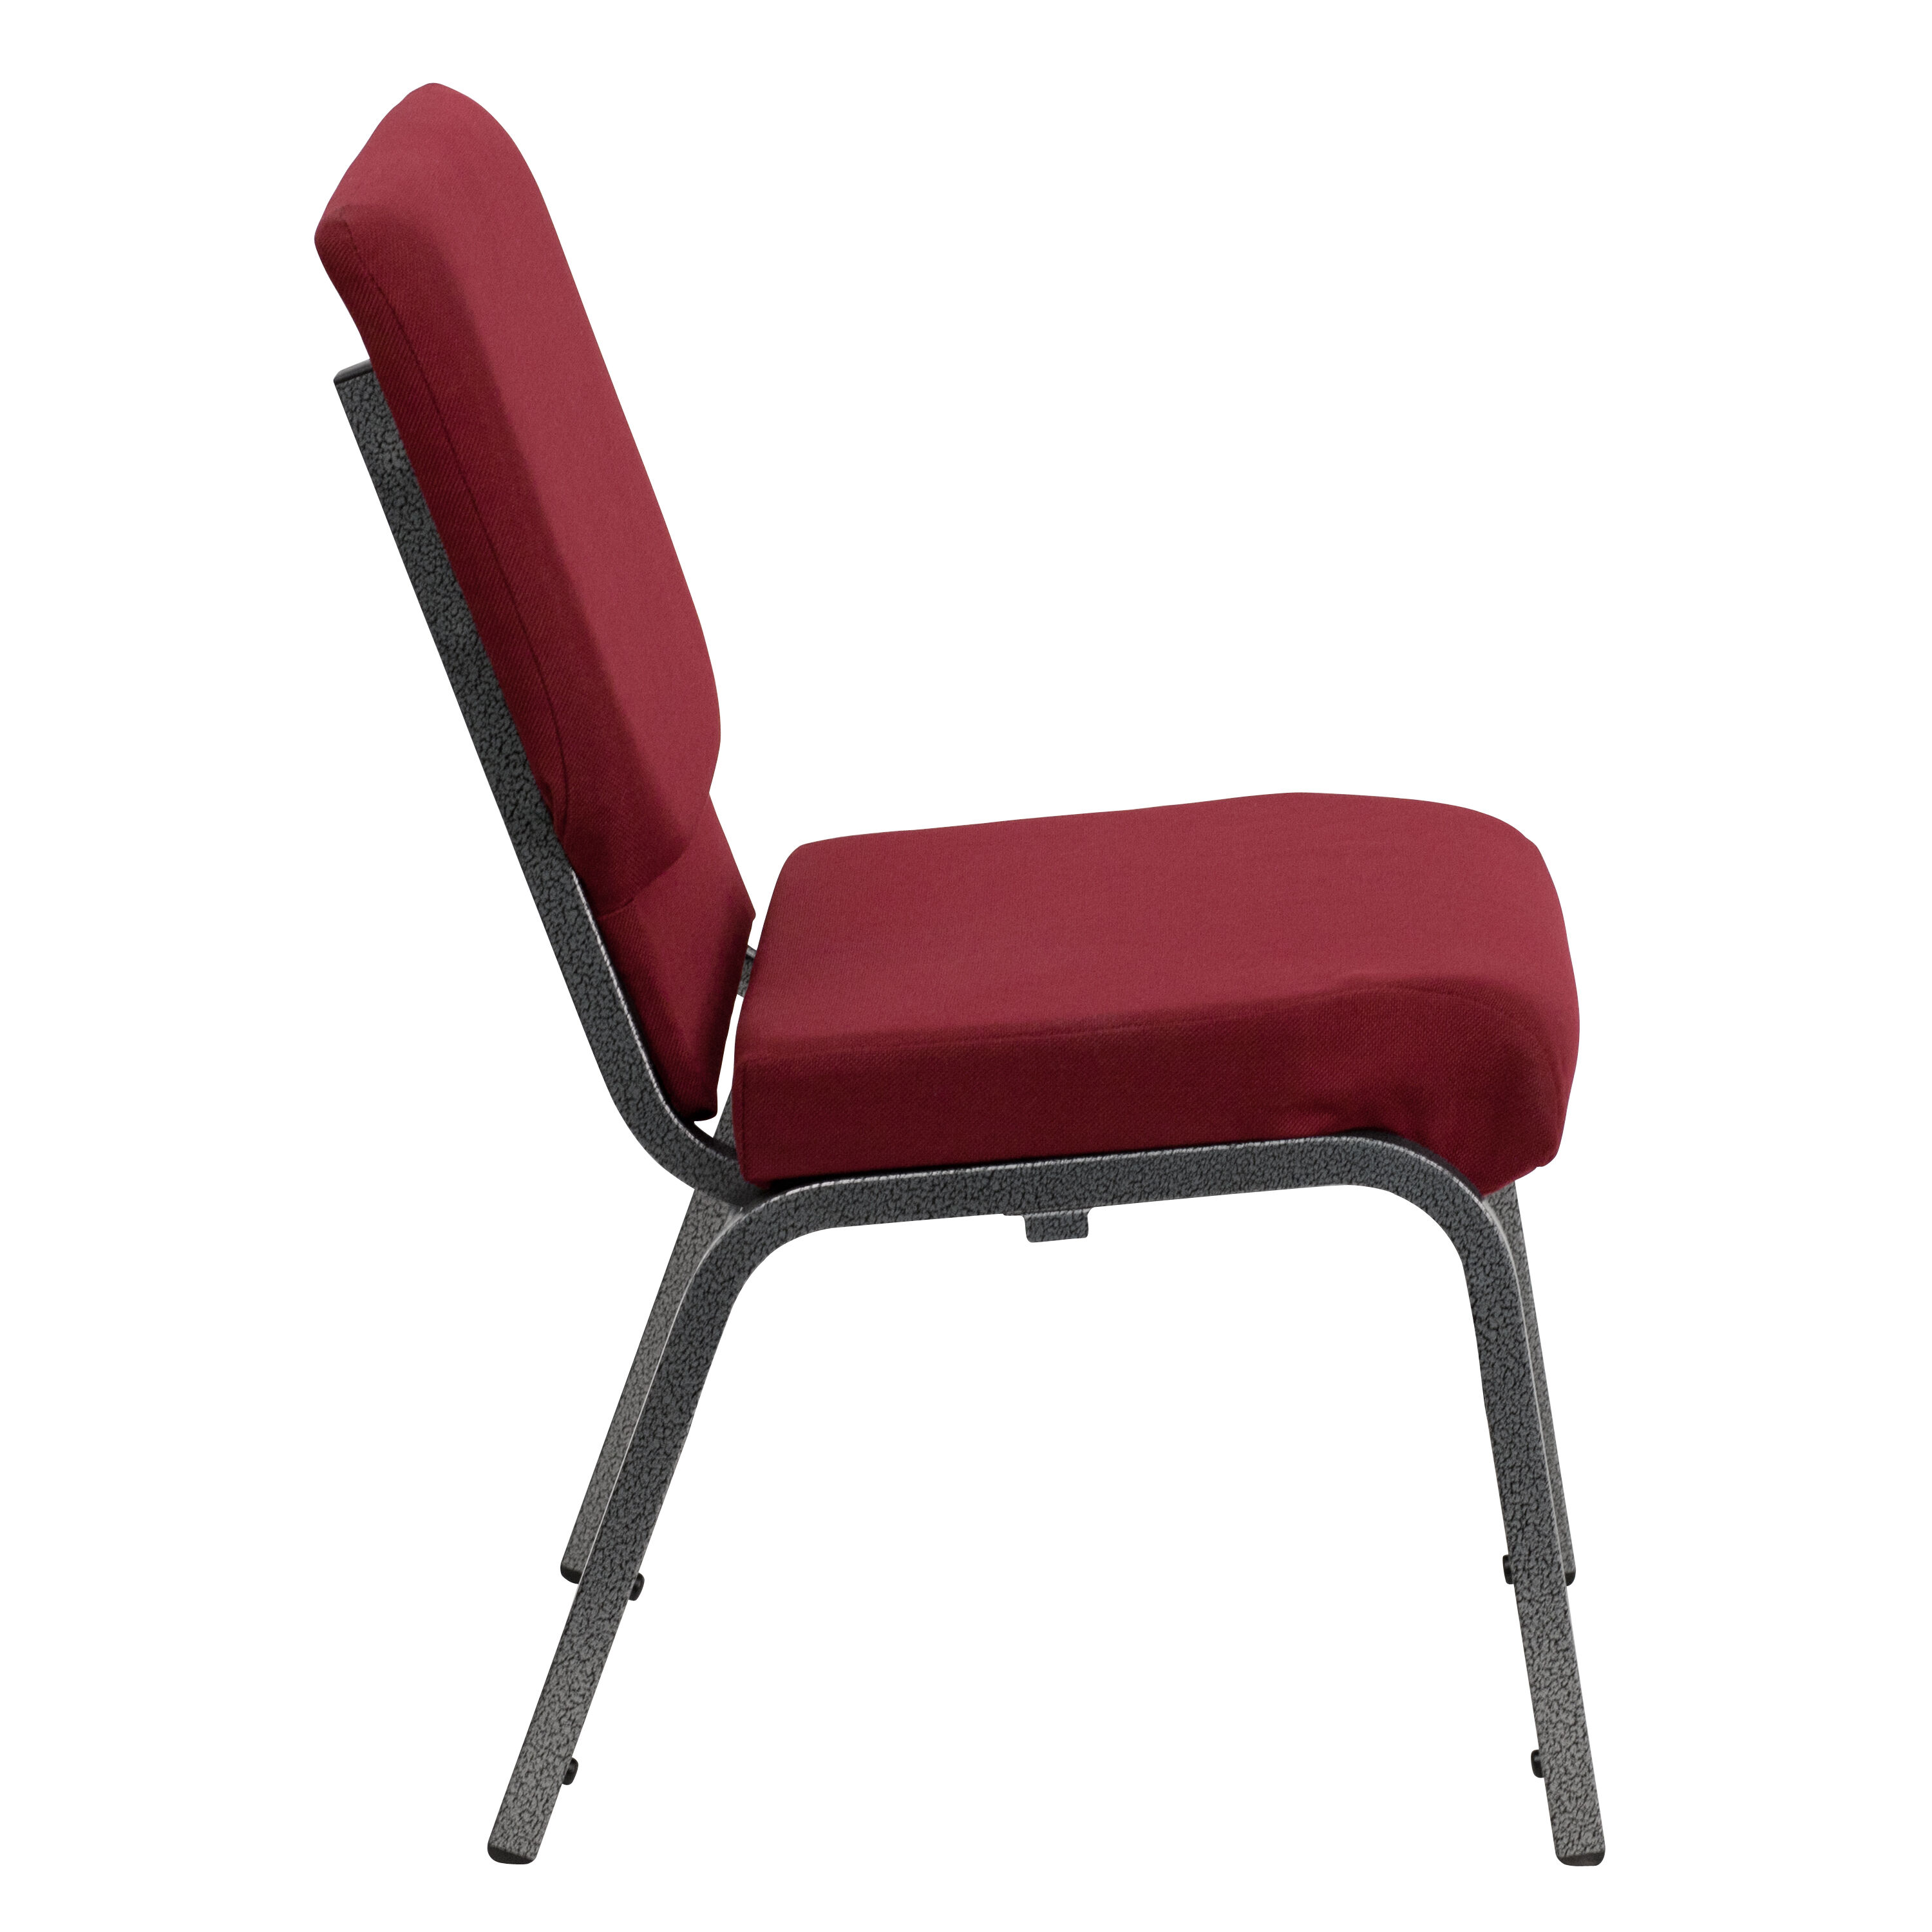 HERCULES Series 185W Stacking Church Chair in Burgundy